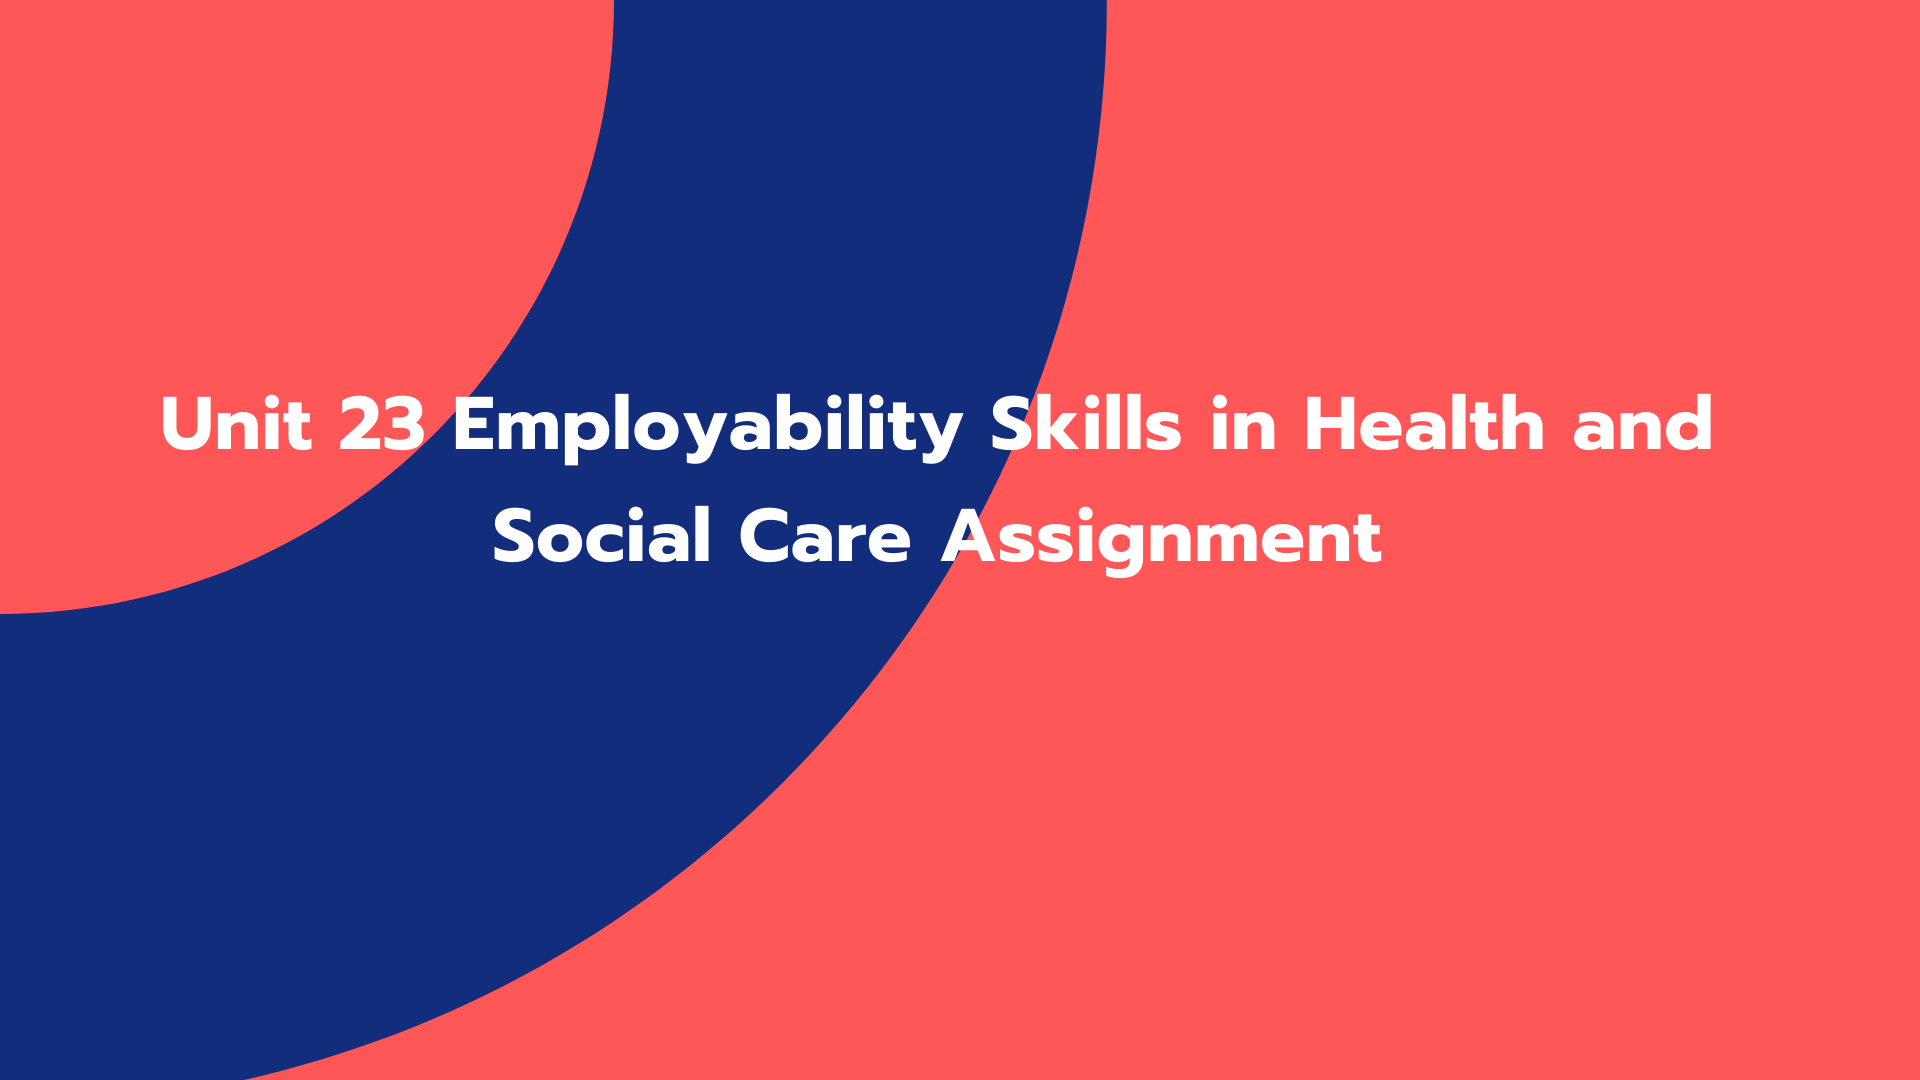 Unit 23 Employability Skills in Health and Social Care Assignment